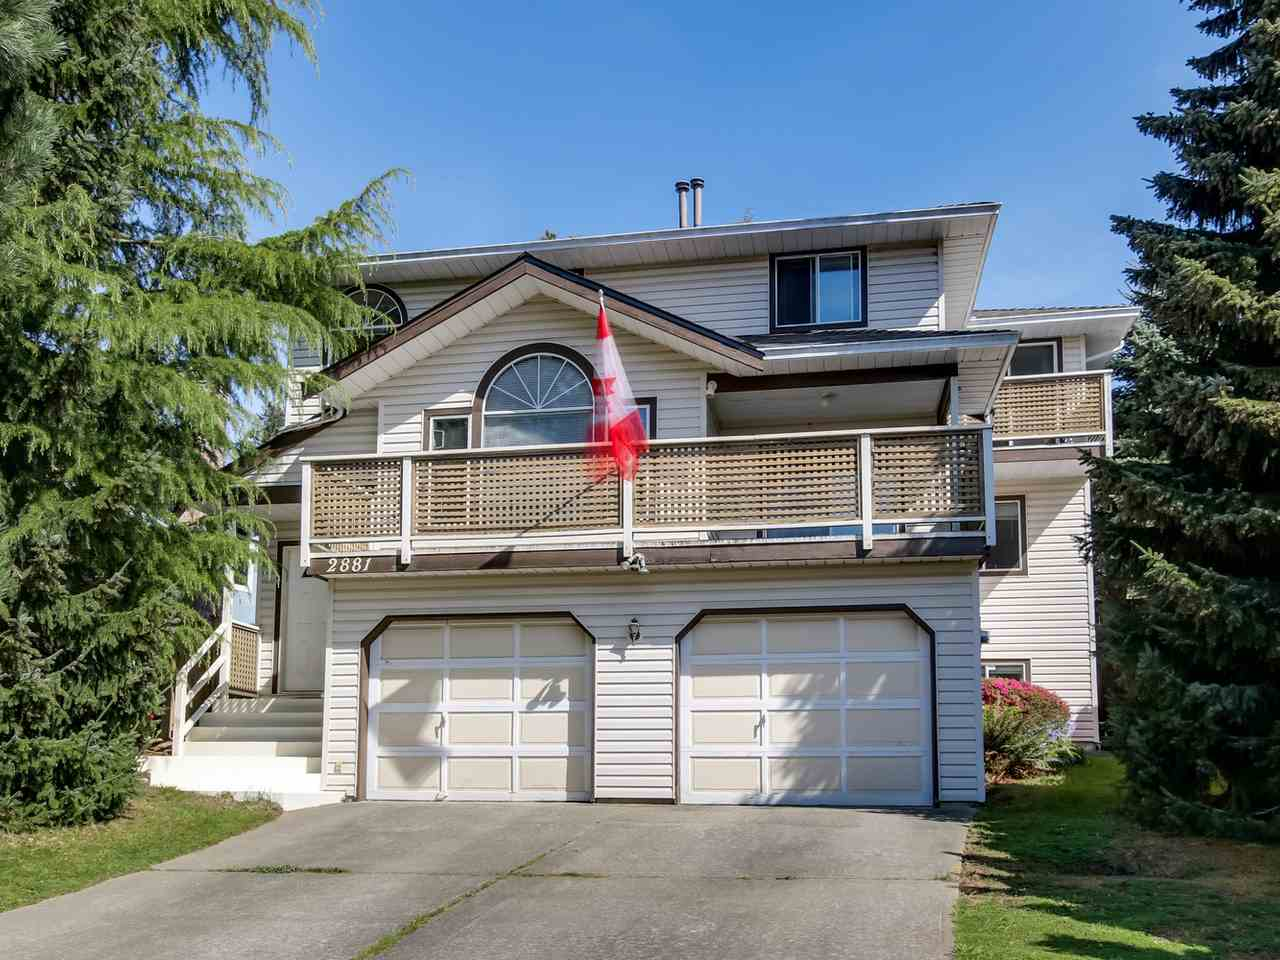 FEATURED LISTING: 2881 TEMPE KNOLL Drive North Vancouver